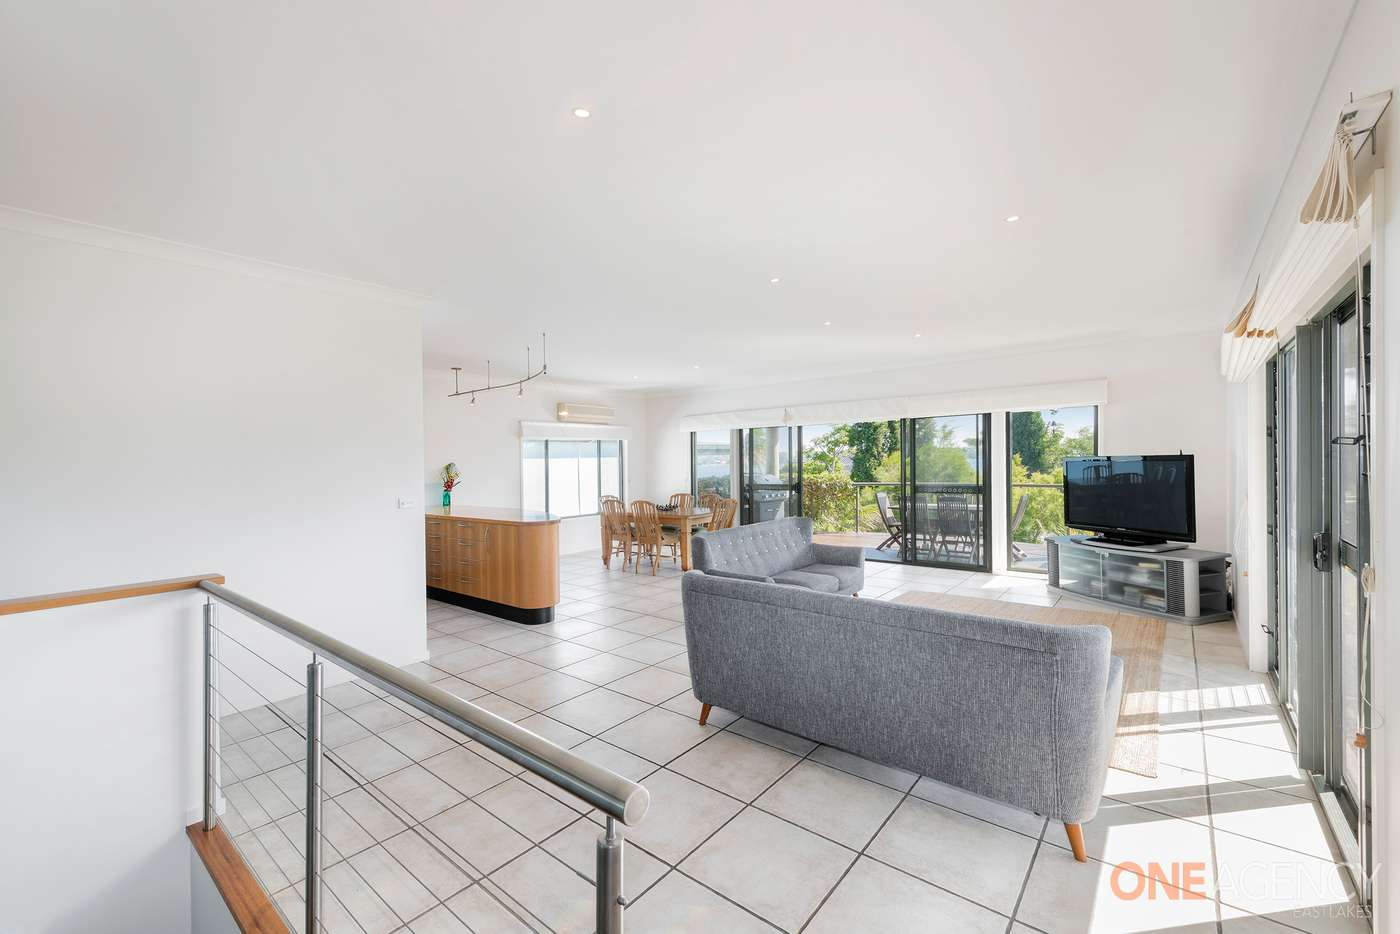 Sixth view of Homely house listing, 80 Marine Parade, Nords Wharf NSW 2281